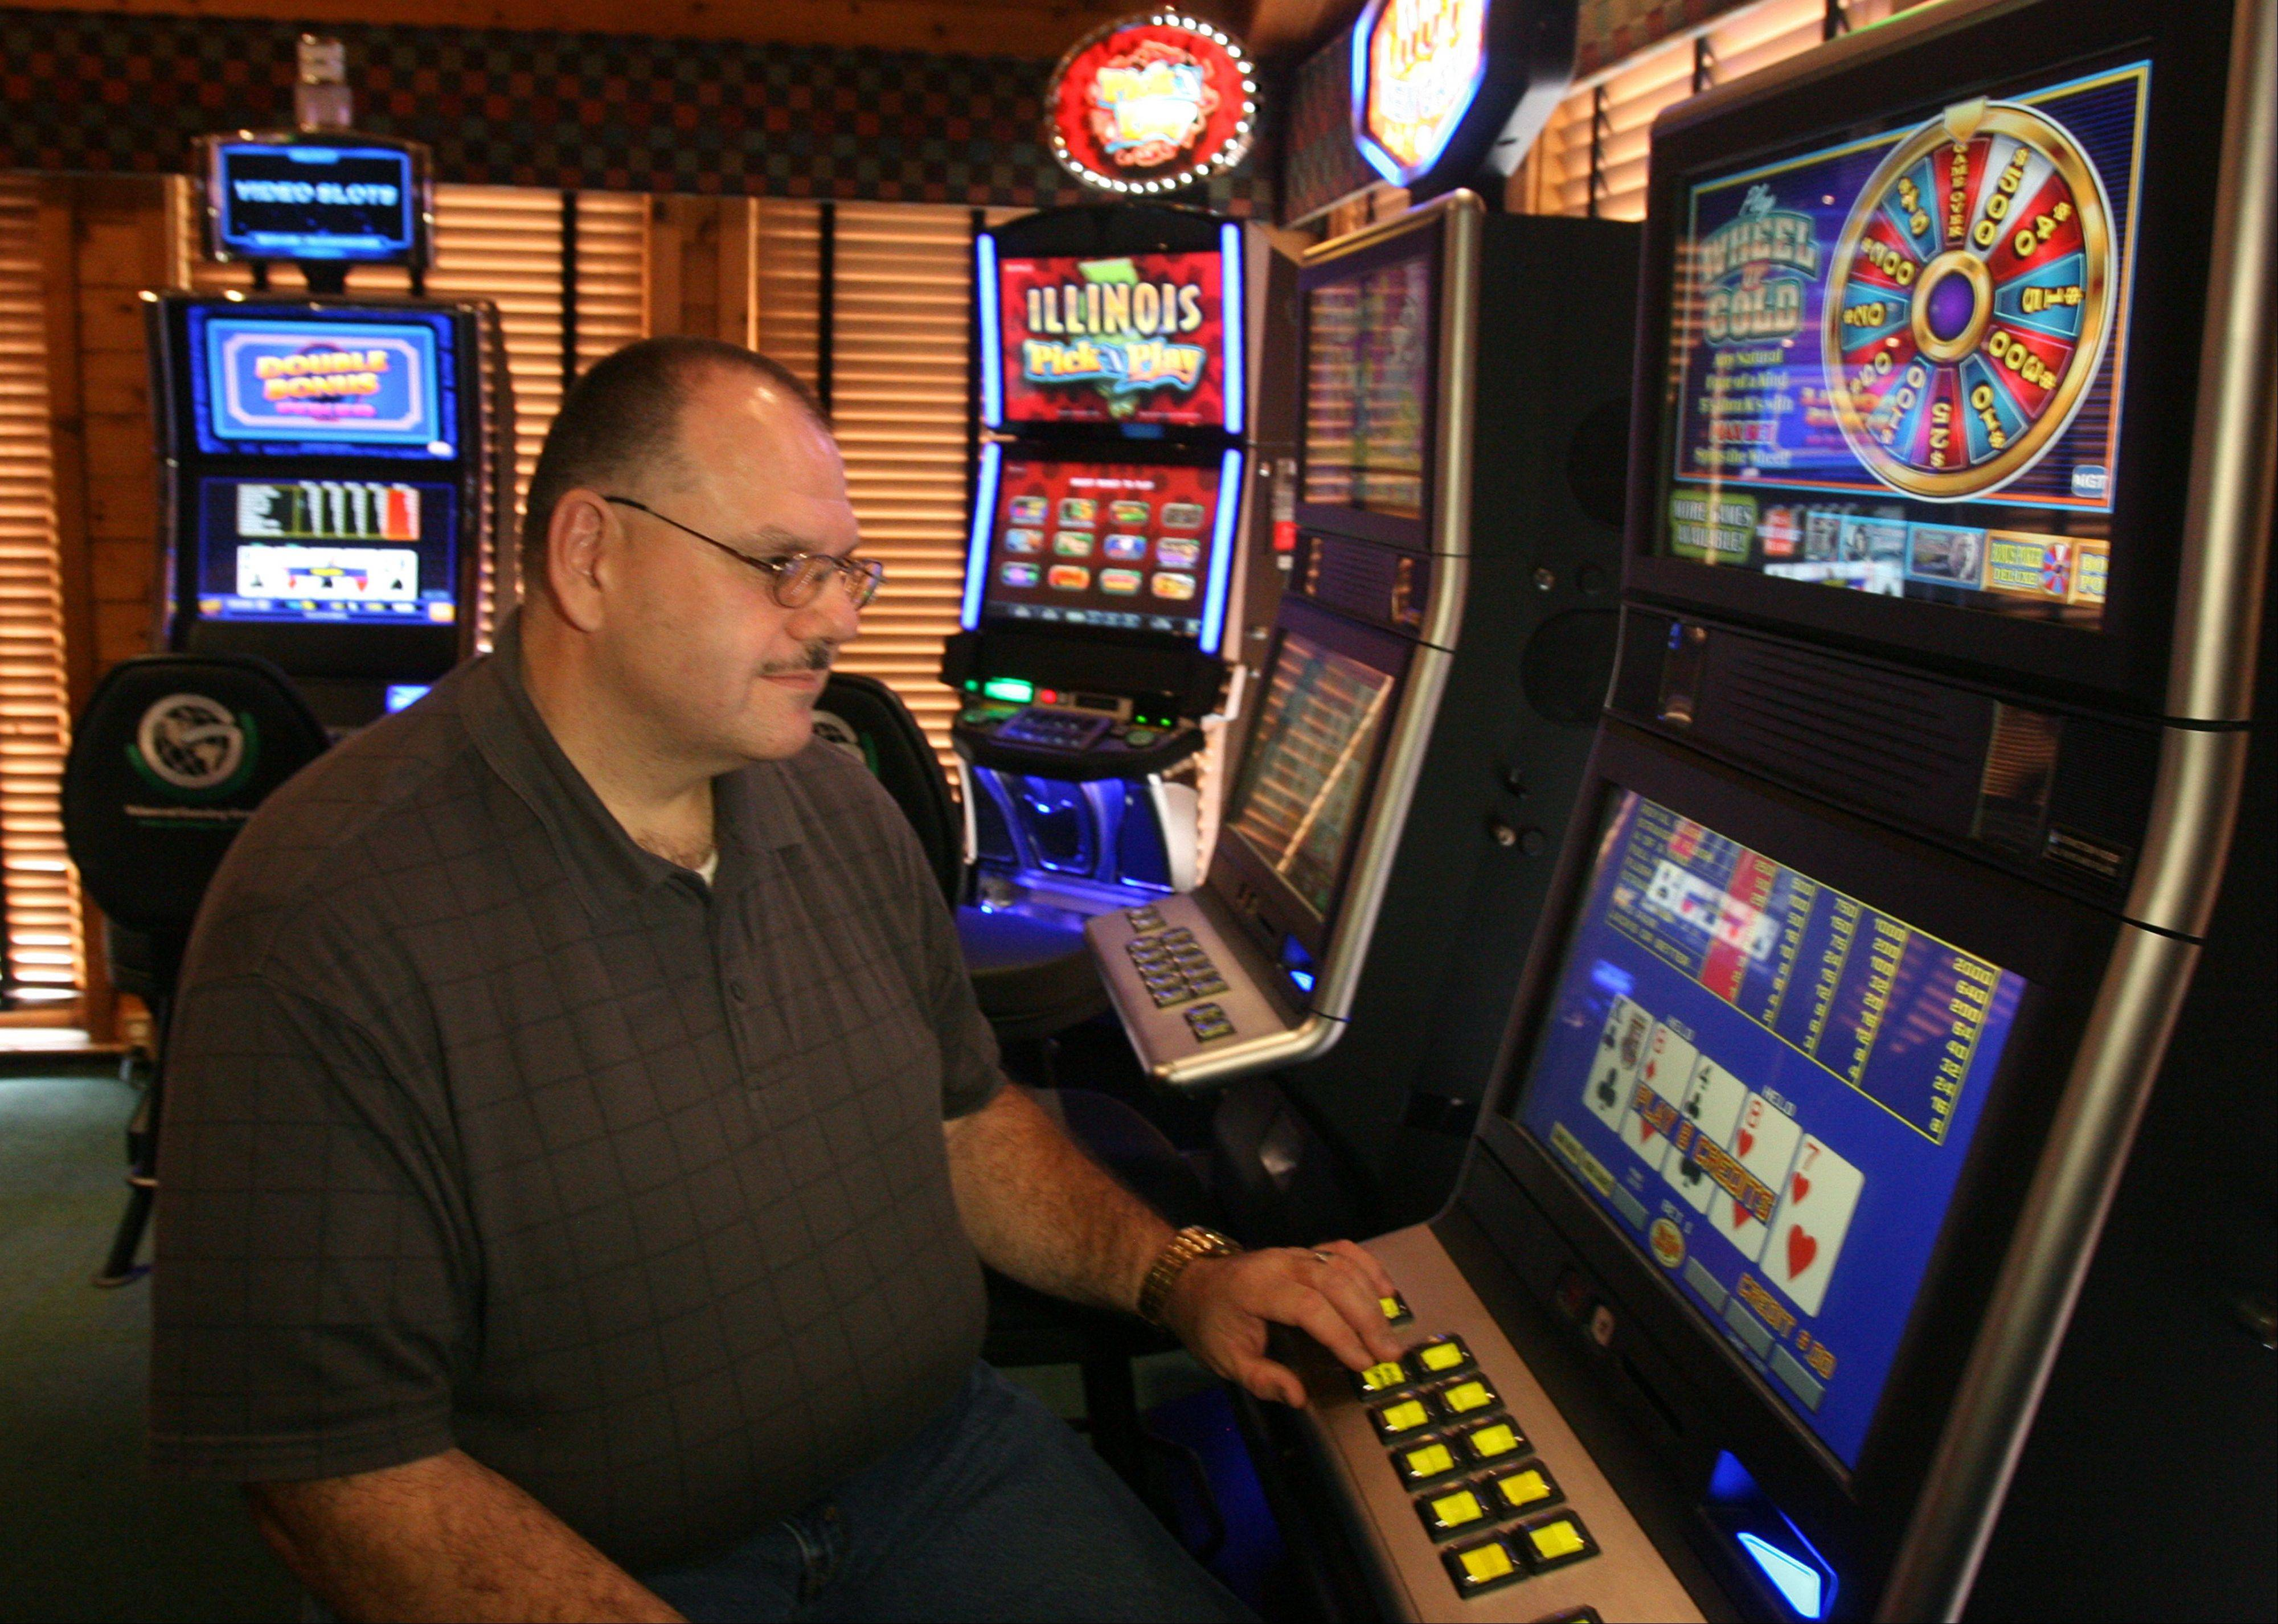 "Robert Franklin of Sapulpa, Okla., tried out one of the video gambling machines at The Assembly American Bar & Cafe in Hoffman Estates Thursday. He lost $6. ""I look at it like going to the movies, except that you can make some money,"" he said. ""If you don't have the money to lose, then don't play."""